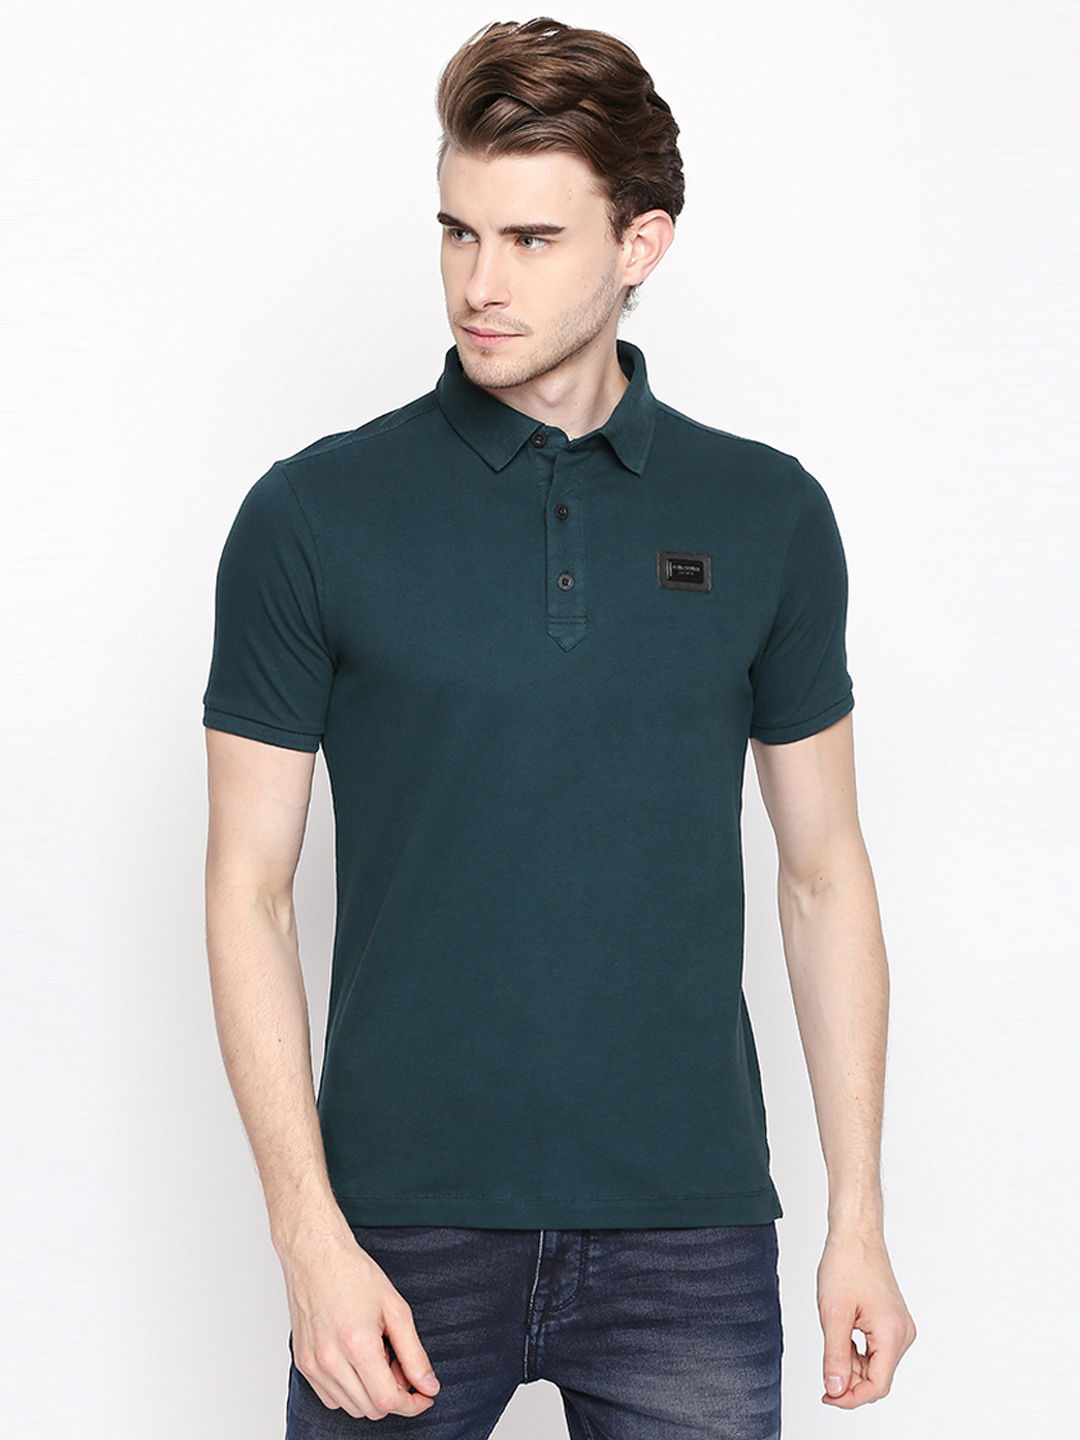 PINE SOLID POLO T-SHIRT